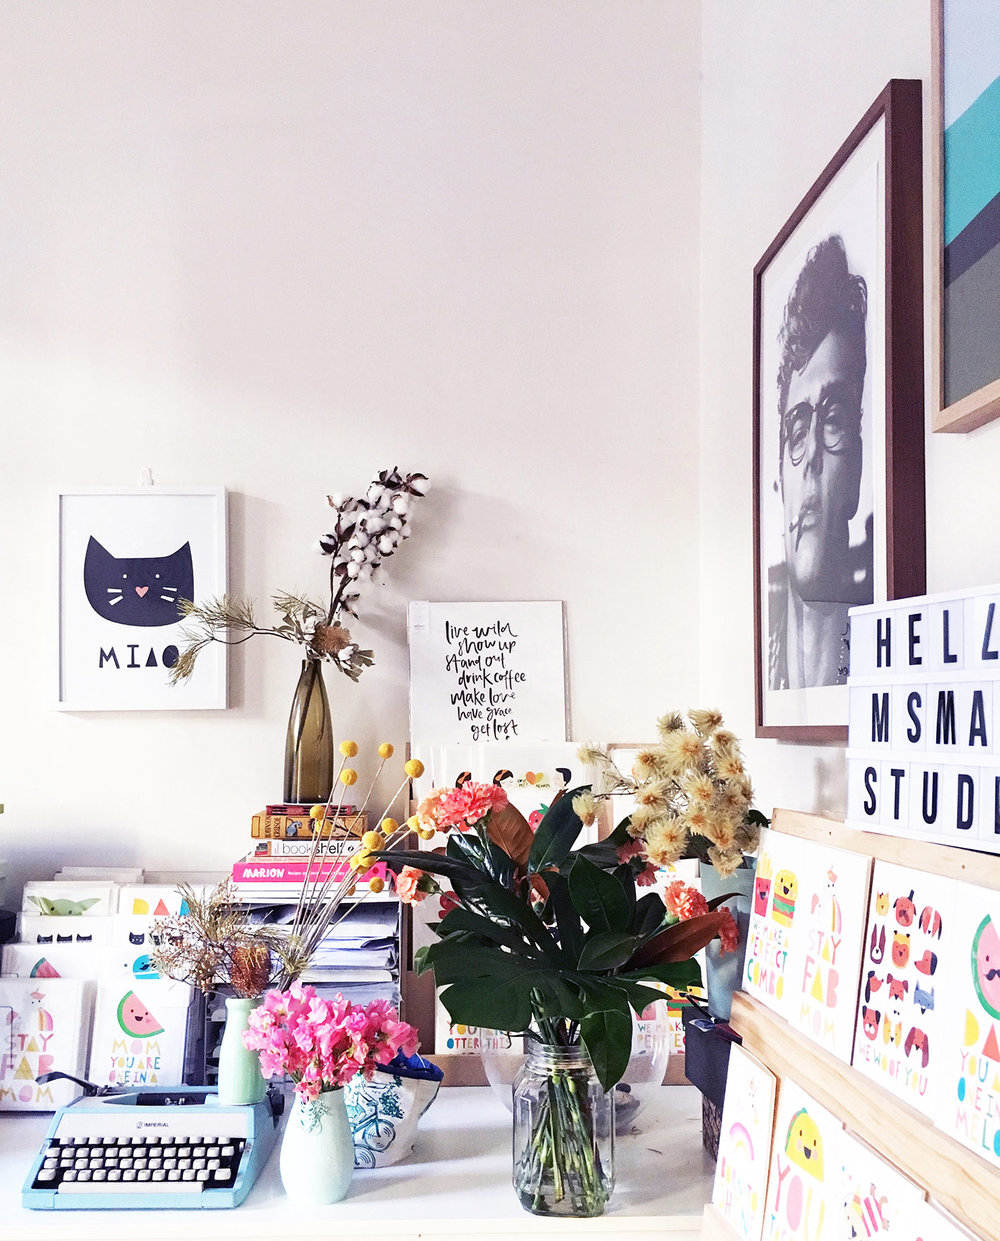 My Hello Miss May Studio in Surry Hills. Photo Credit : May Leong